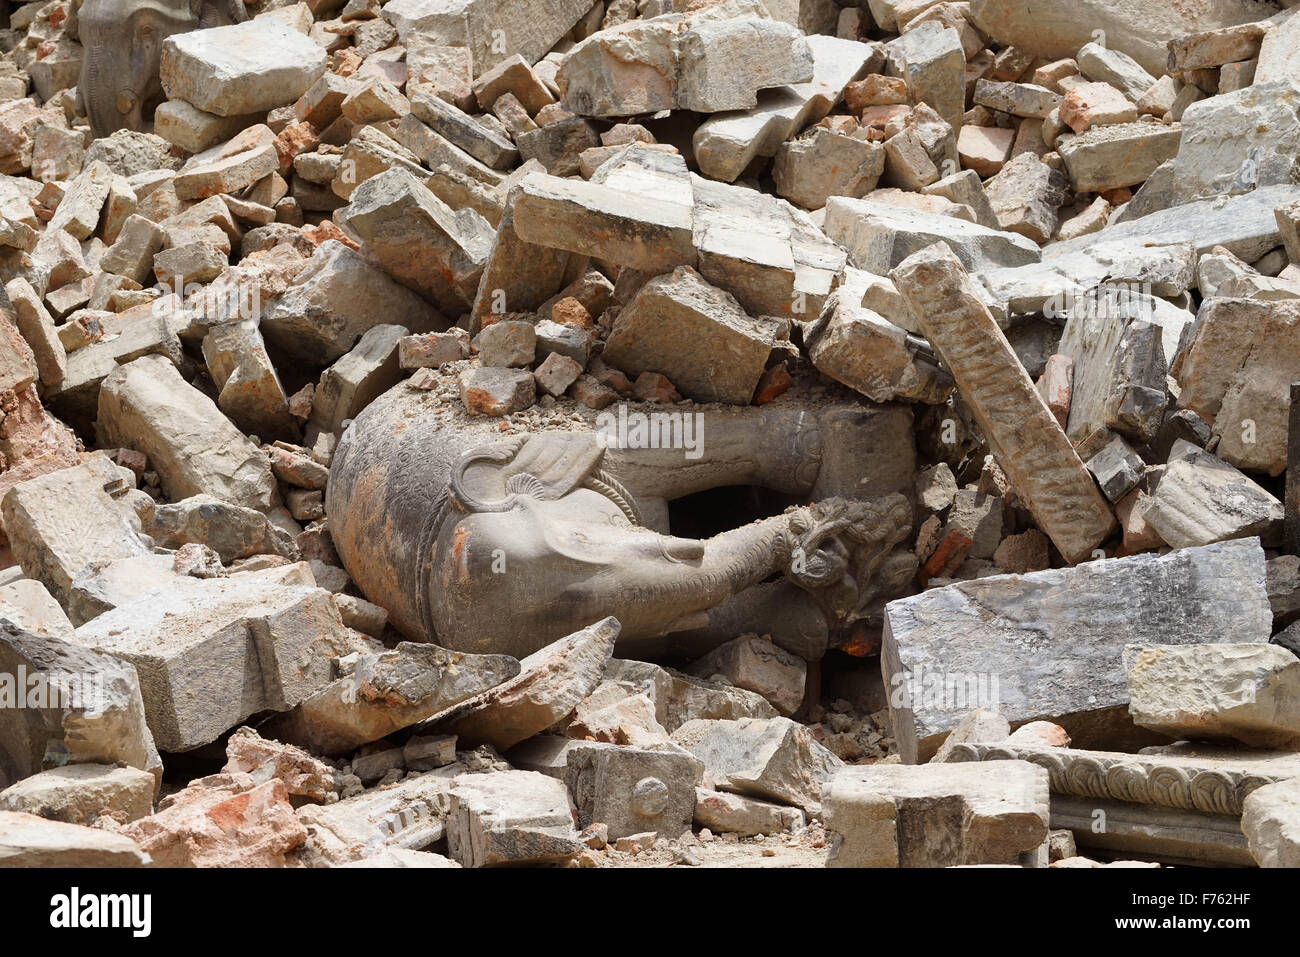 Portion of temple destroyed, earthquake, bhaktapur, nepal, asia - Stock Image